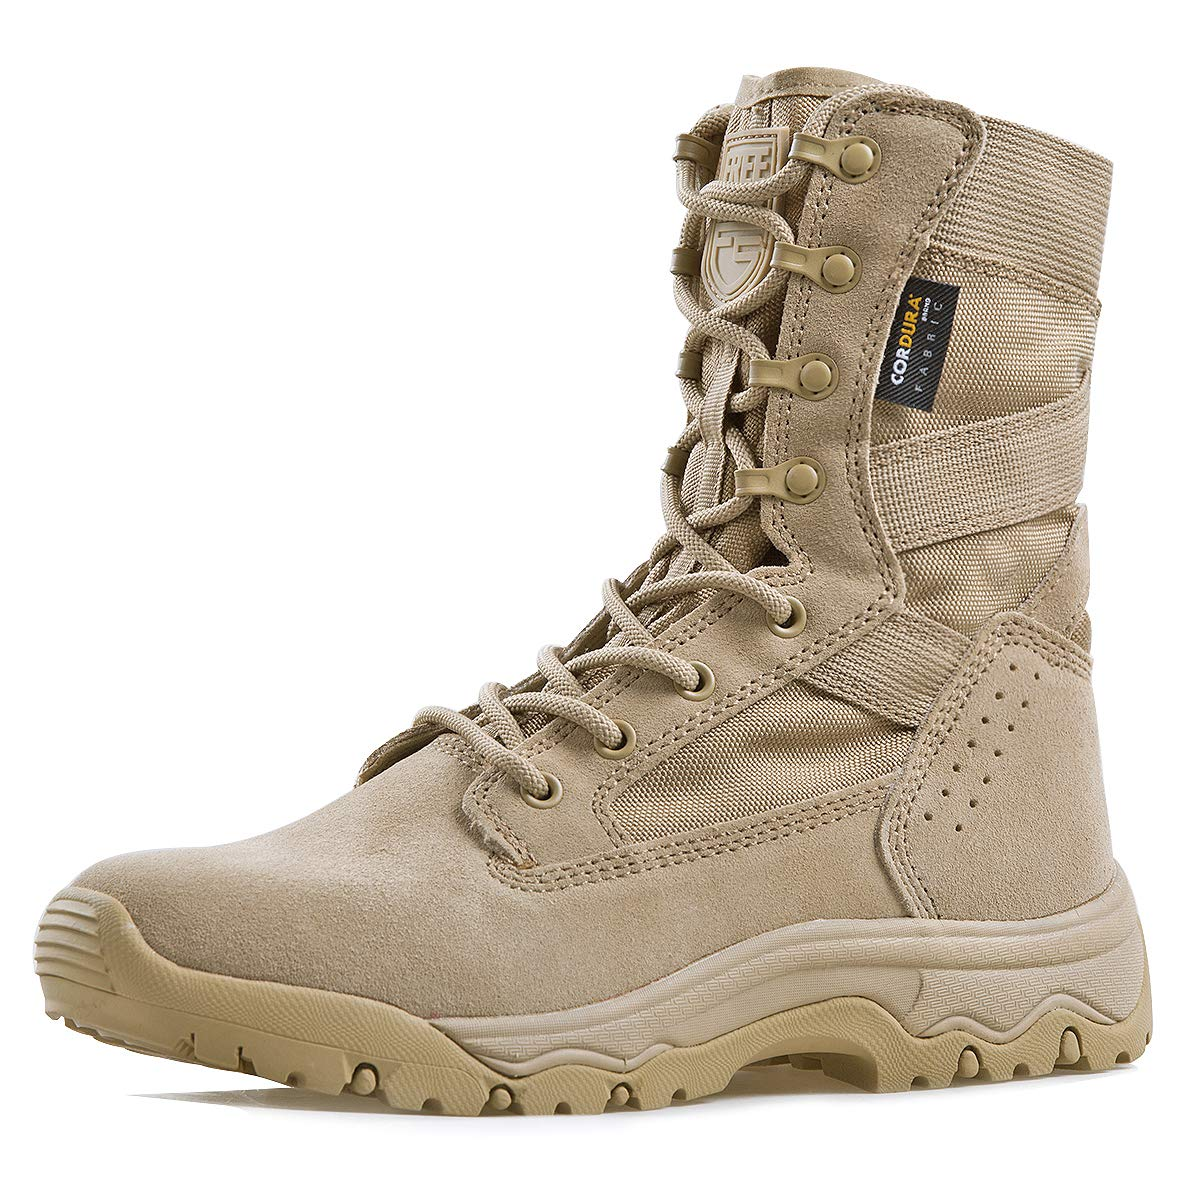 FREE SOLDIER Men's Tactical Boots 8 Inches Lightweight Combat Boots Durable Suede Leather Military Work Boots Desert Boots (Tan, 10) by FREE SOLDIER